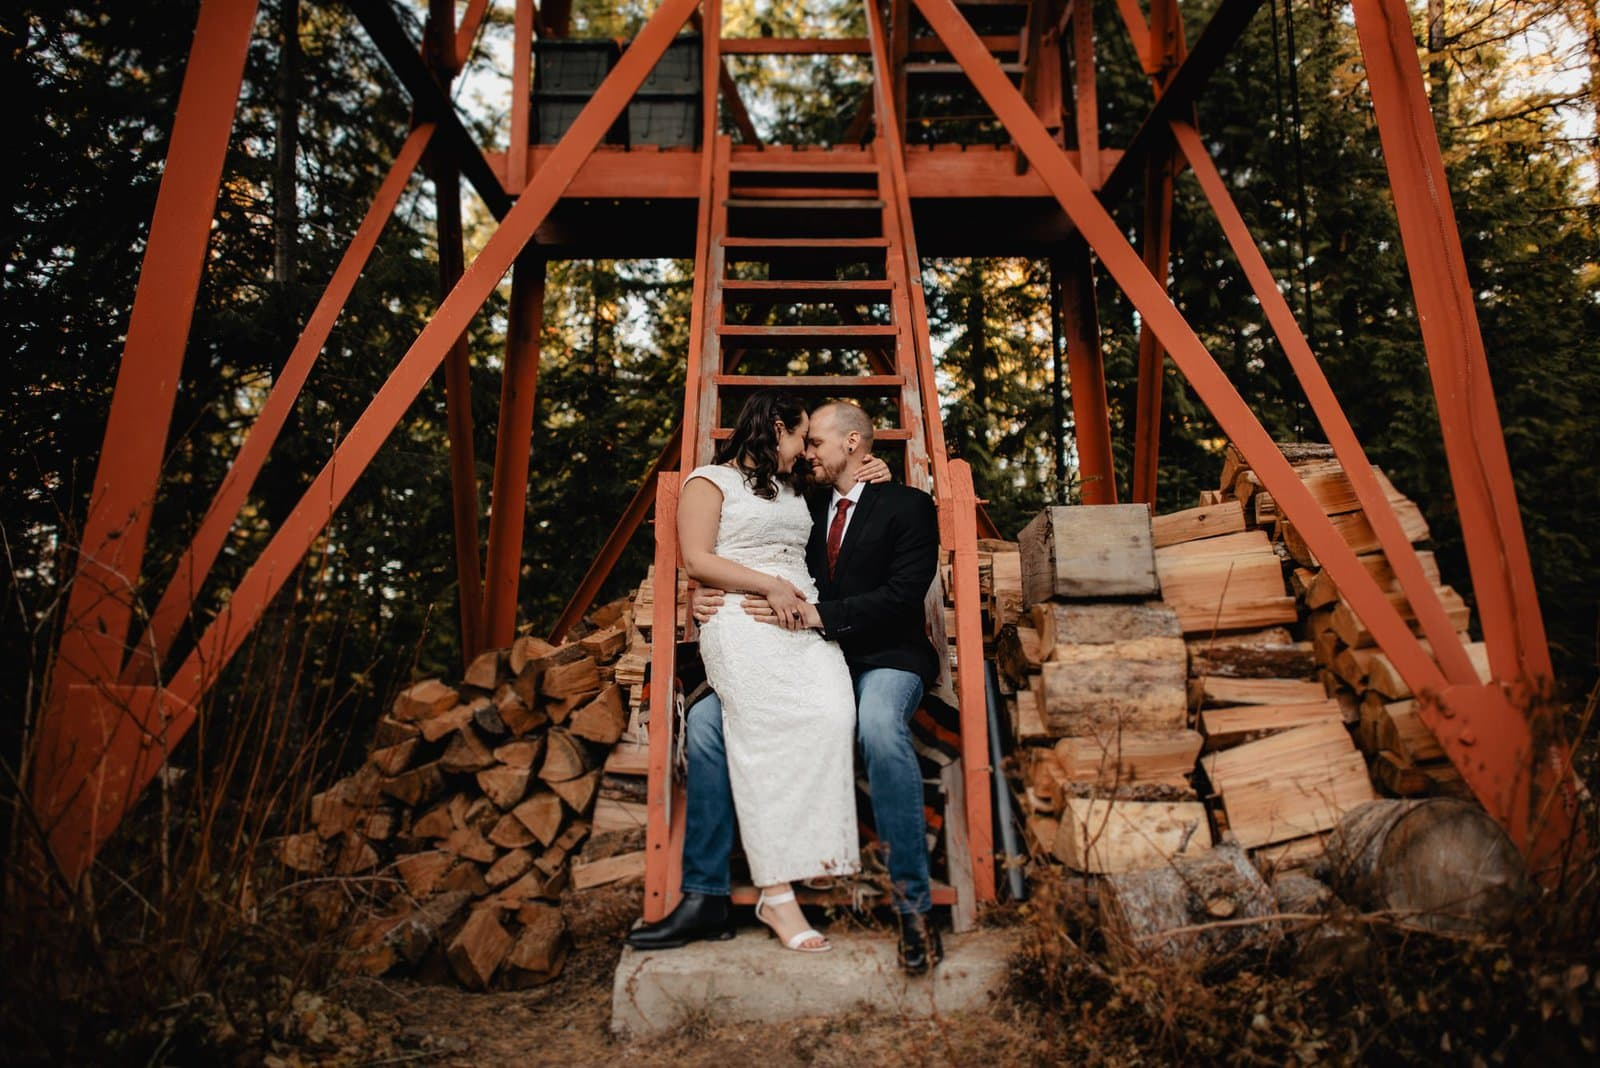 Intimate elopement in Idaho.